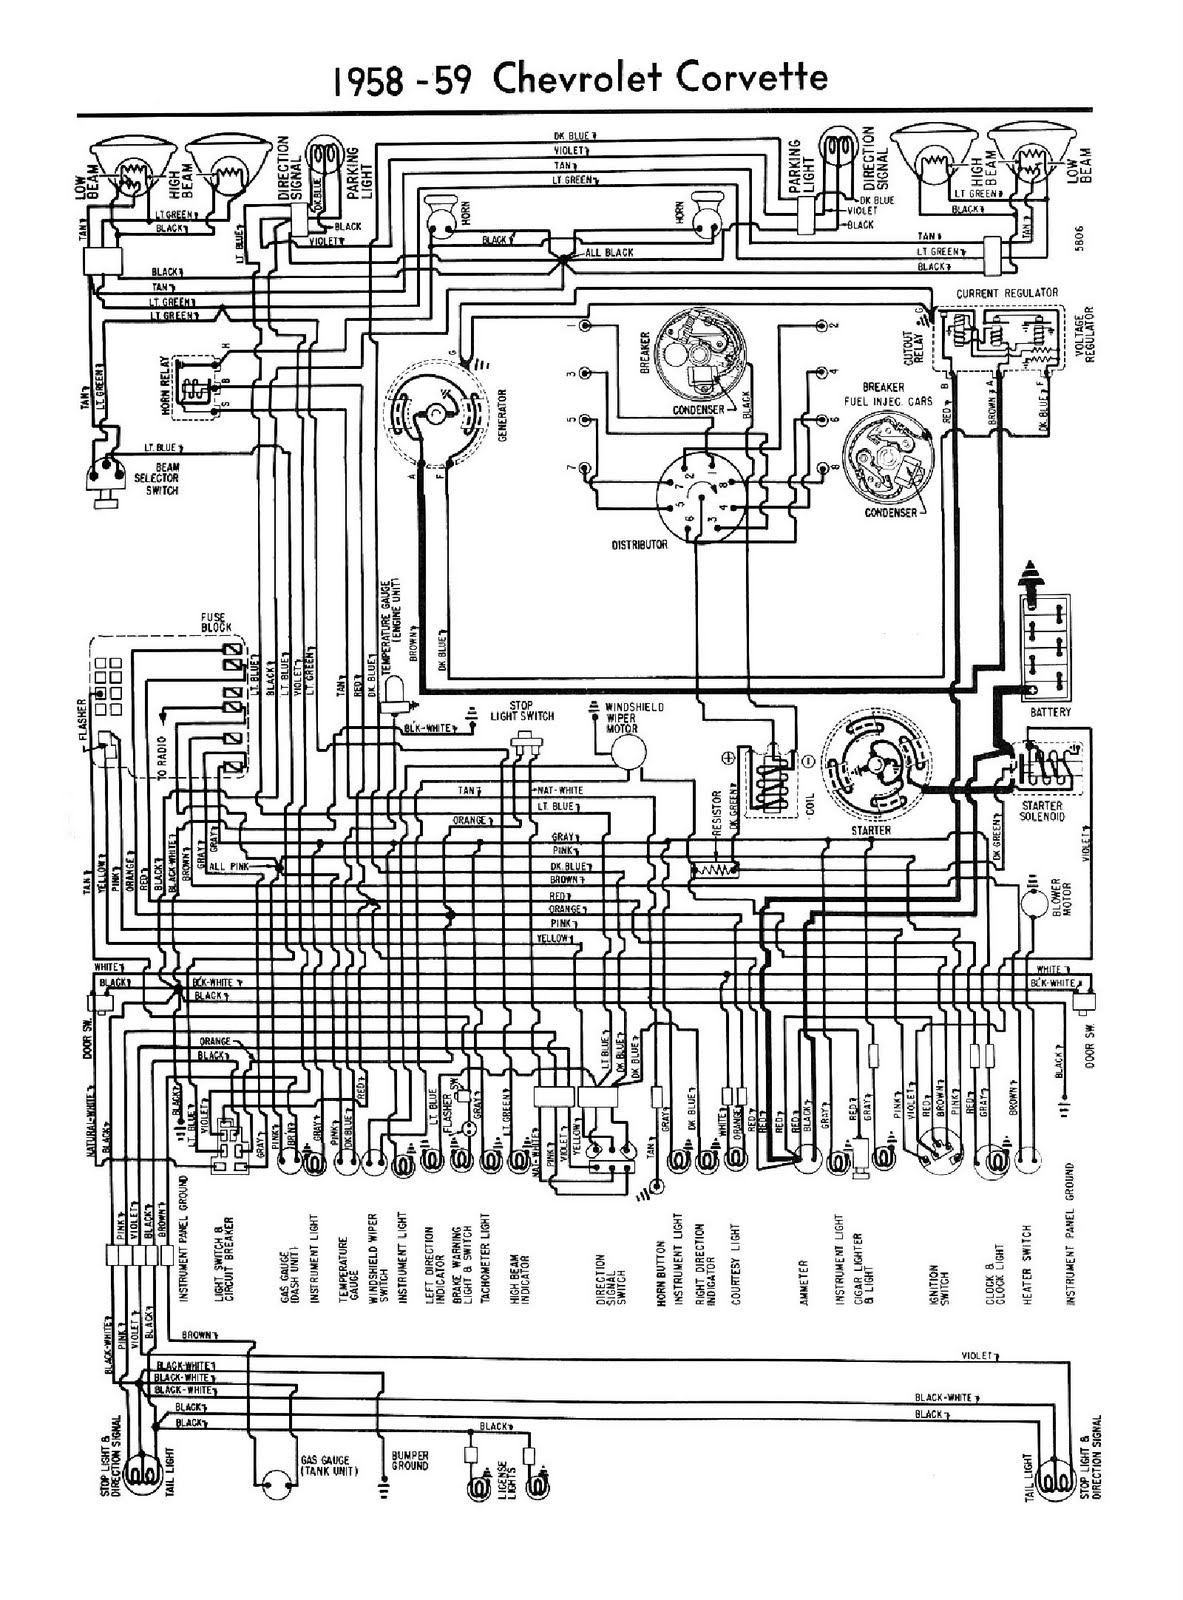 free auto wiring diagram: 1958-1959 chevrolet corvette ... wiring diagram for 1959 chevy truck